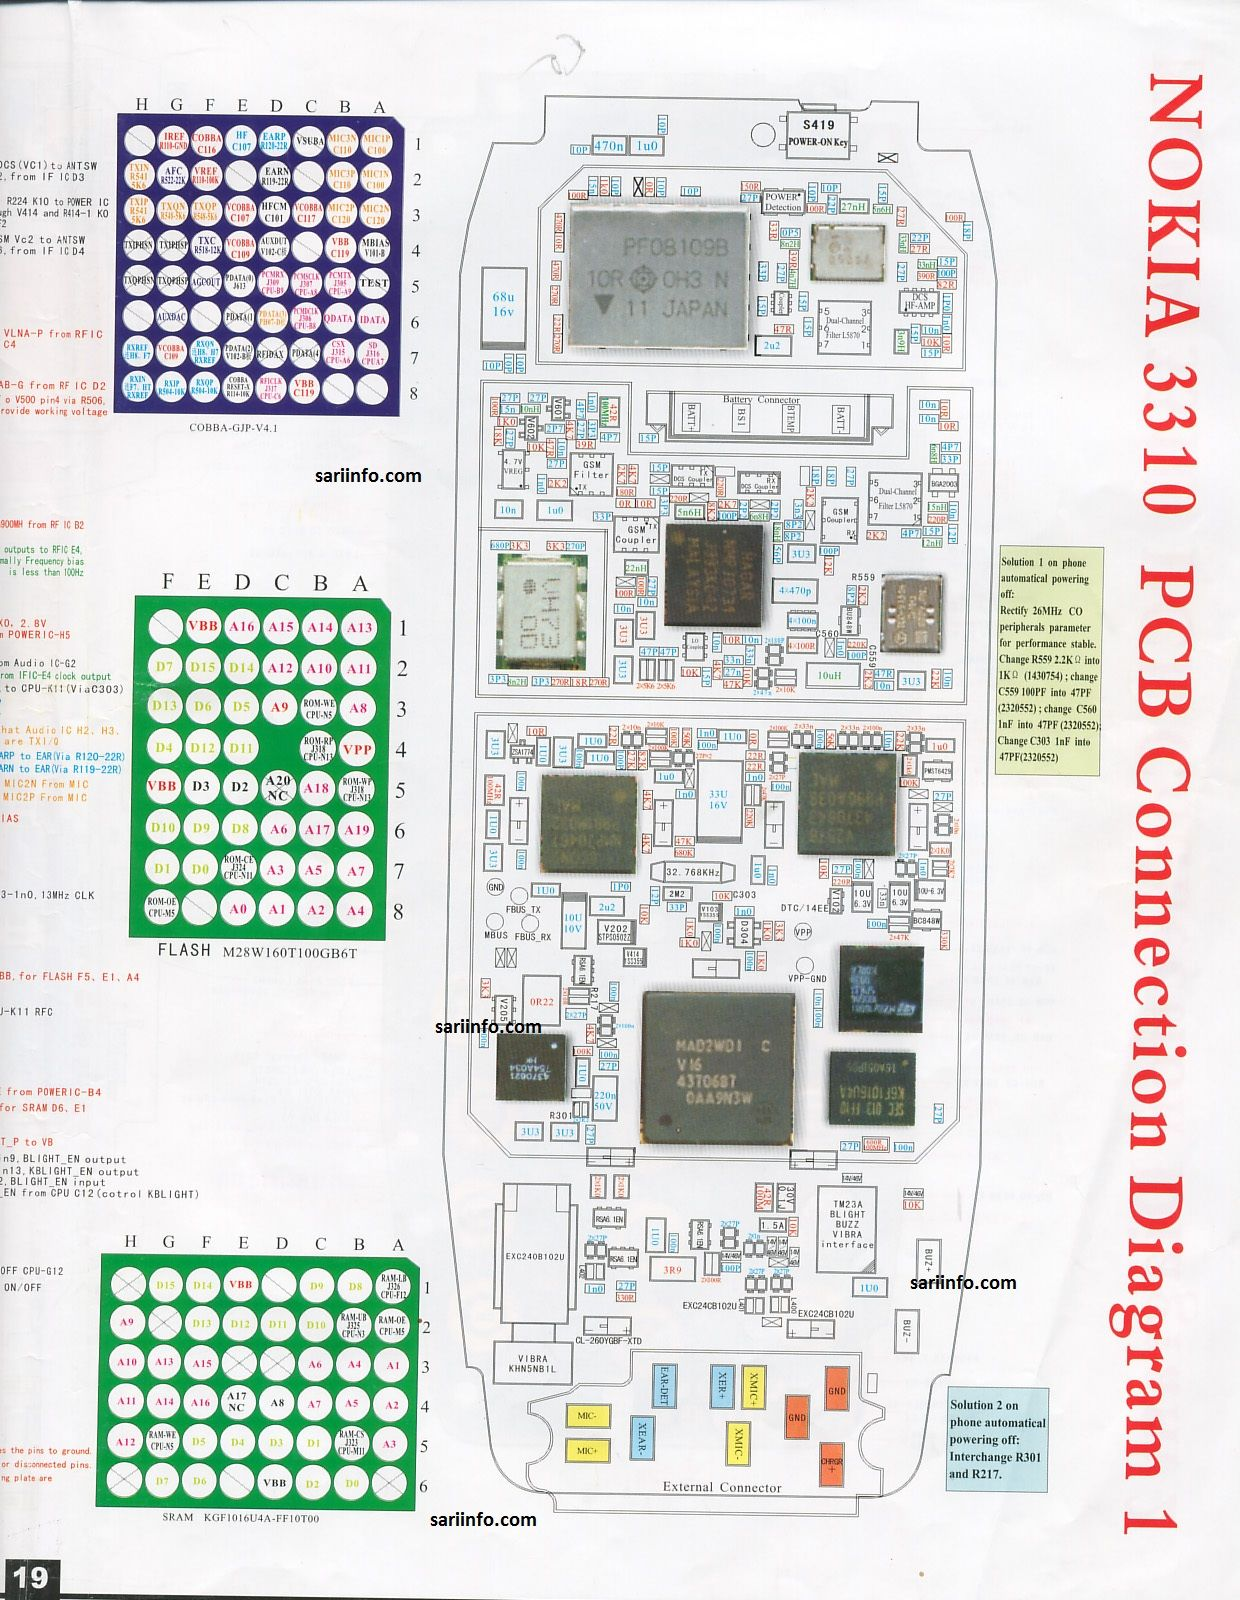 nokia 3310 pcb diagram solutions mobiles tablets pinterest rh pinterest com nokia 1110 pcb circuit diagram nokia 1600 pcb circuit diagram